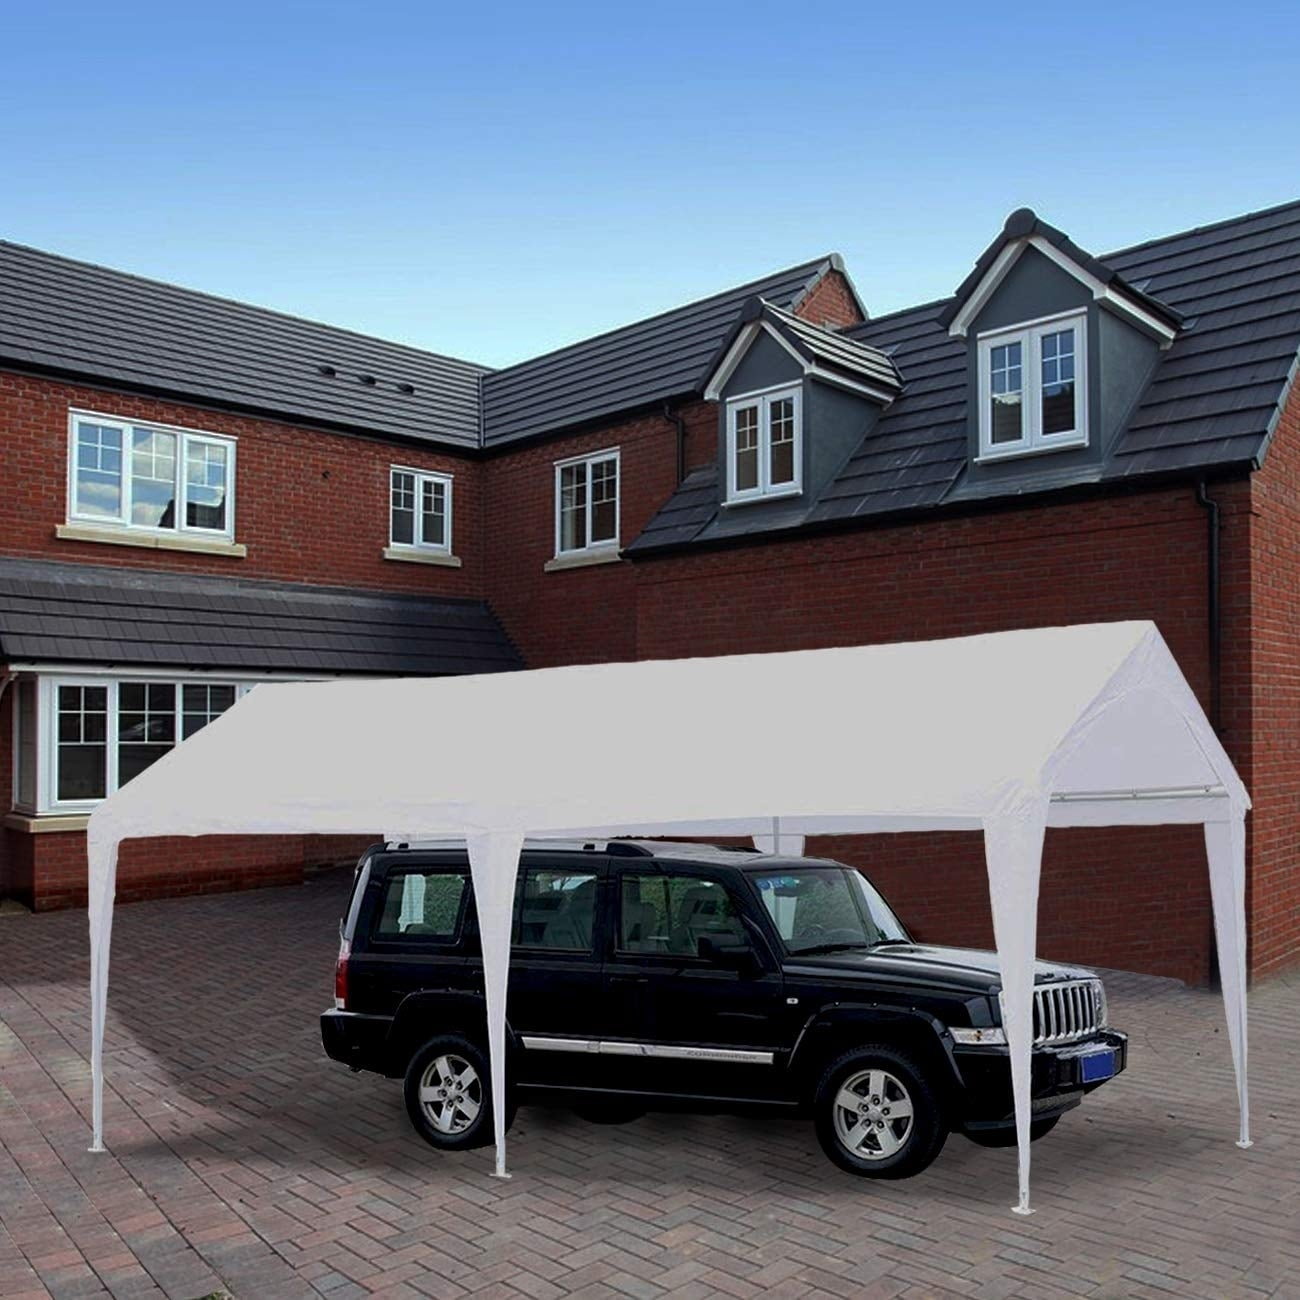 abba patio 10 x 20 feet domain outdoor carport canopy with 6 steel legs white